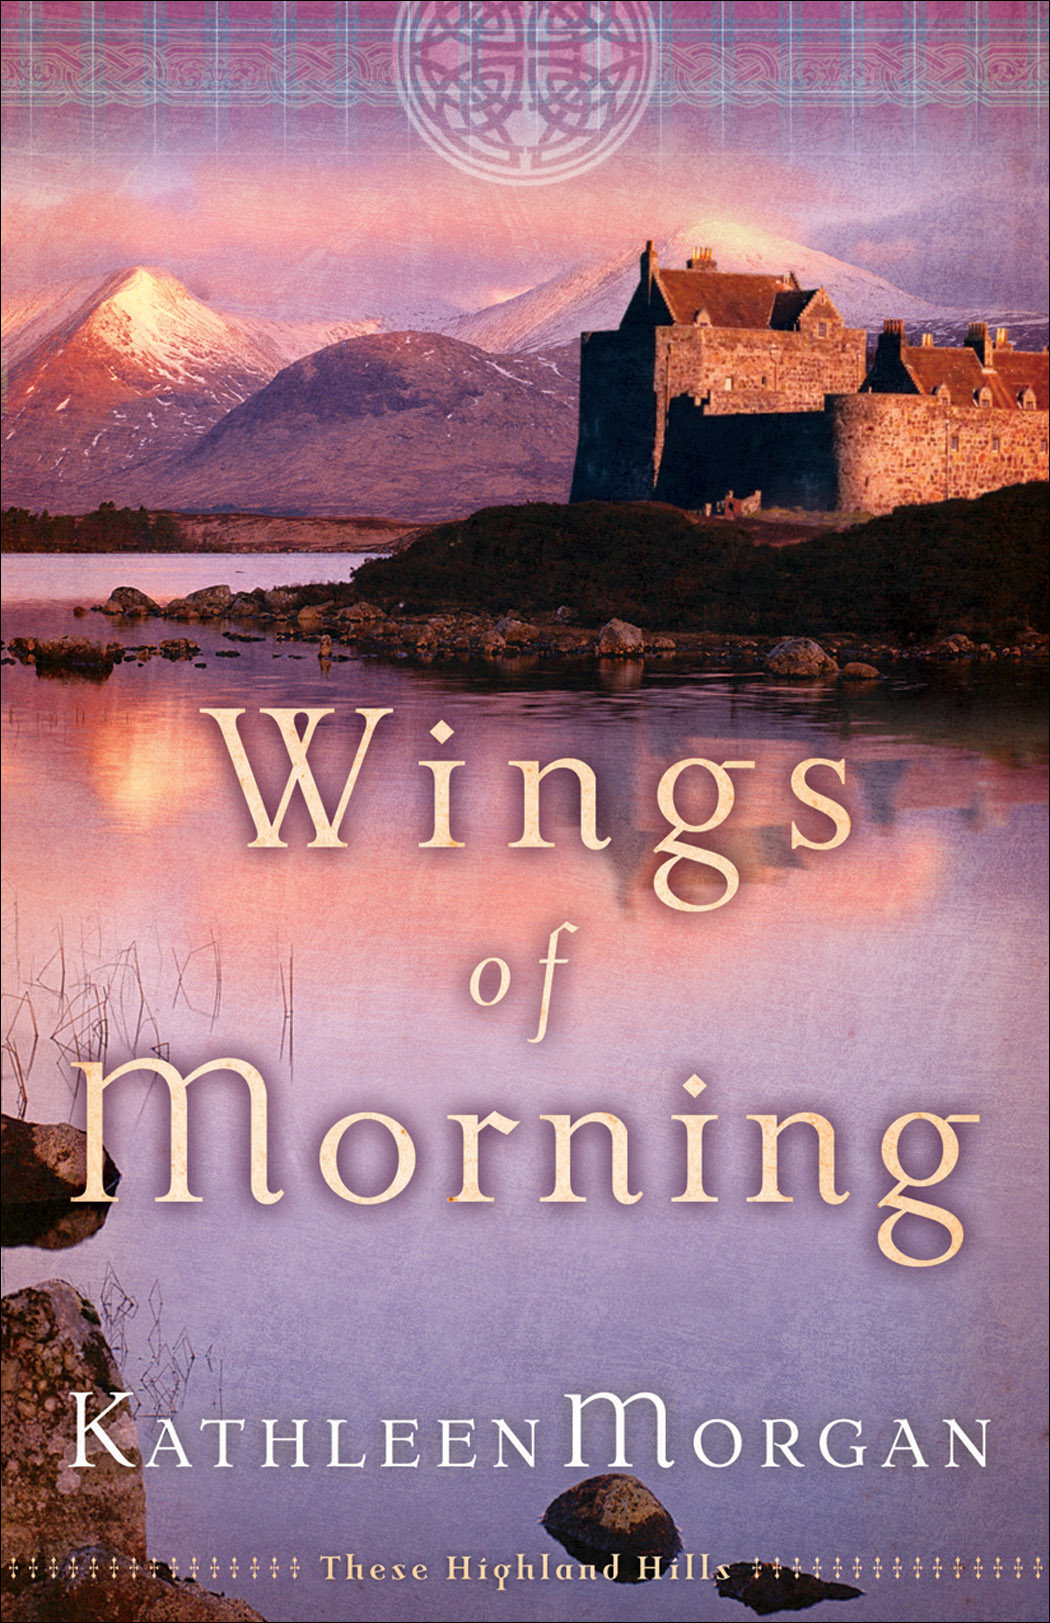 Wings of Morning (These Highland Hills Book #2) By: Kathleen Morgan